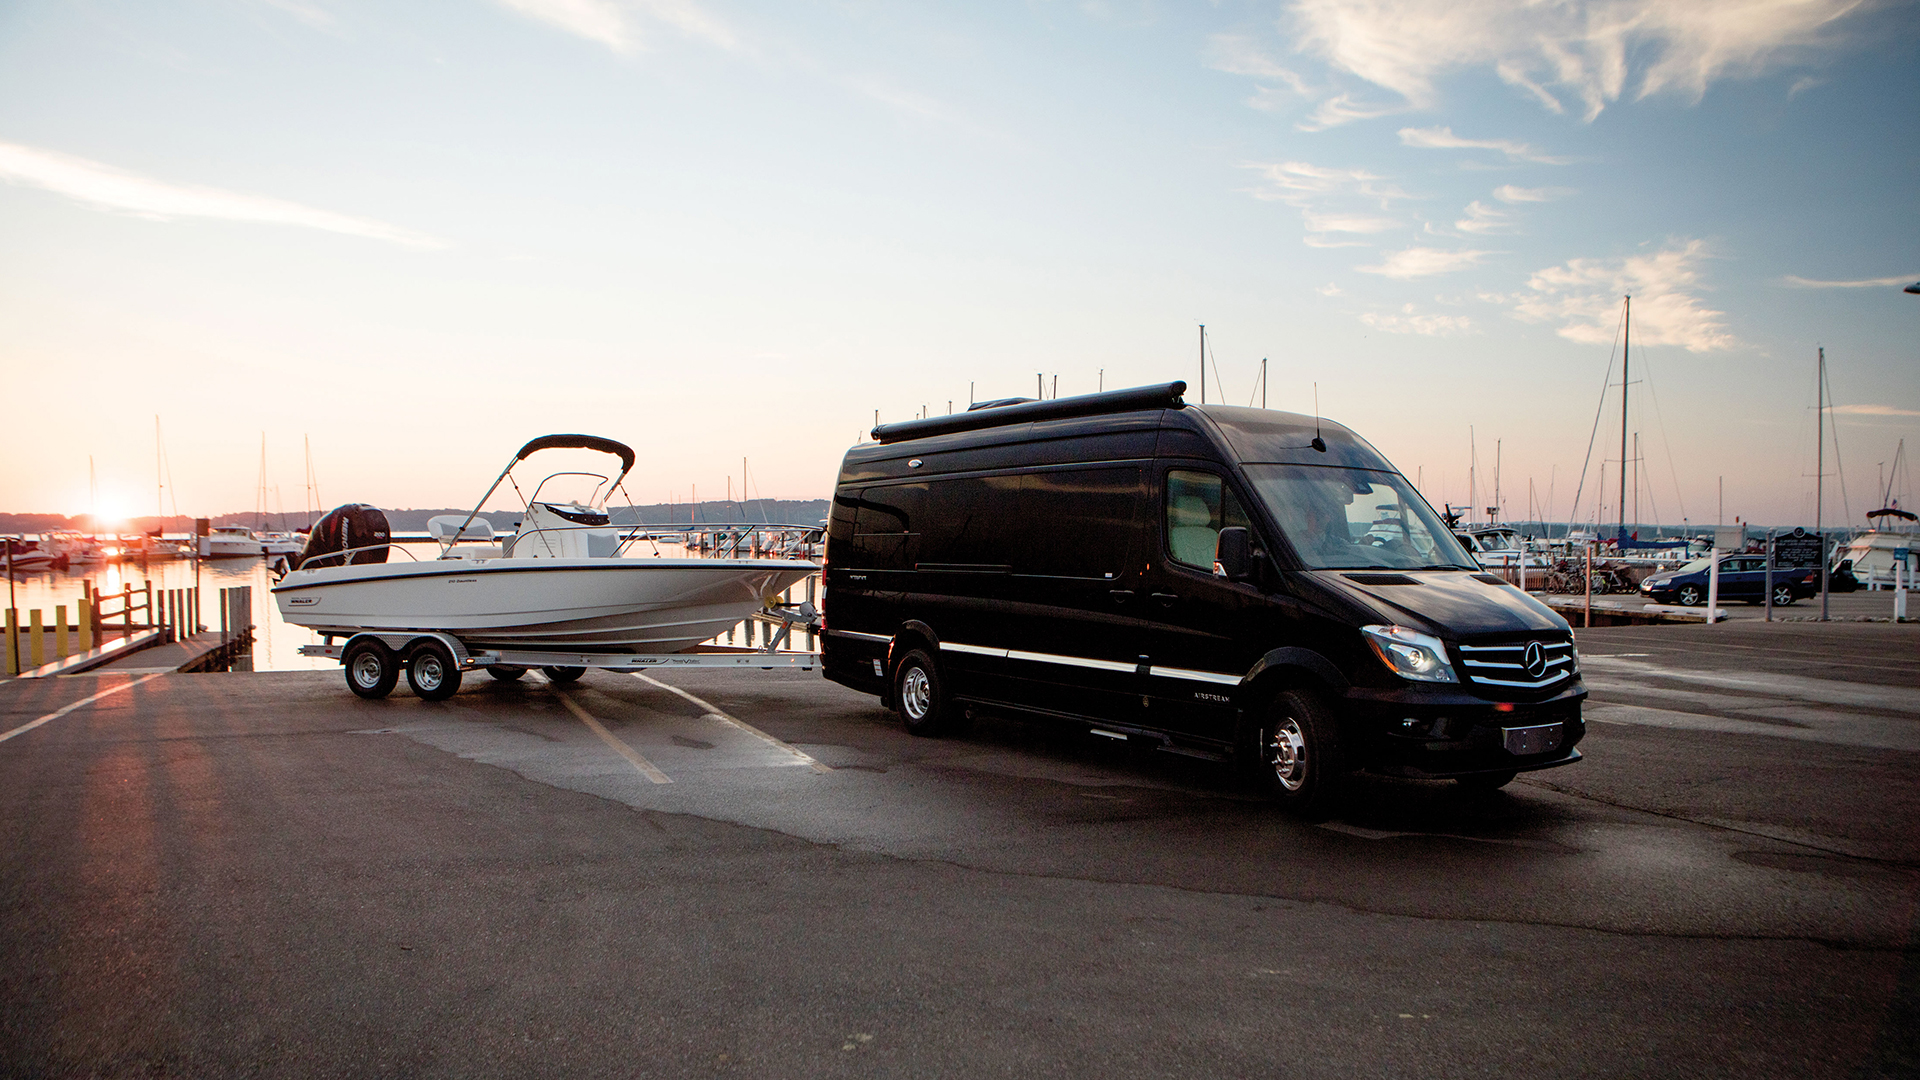 Airstream-Towing-Capability-of-Motorized-RV